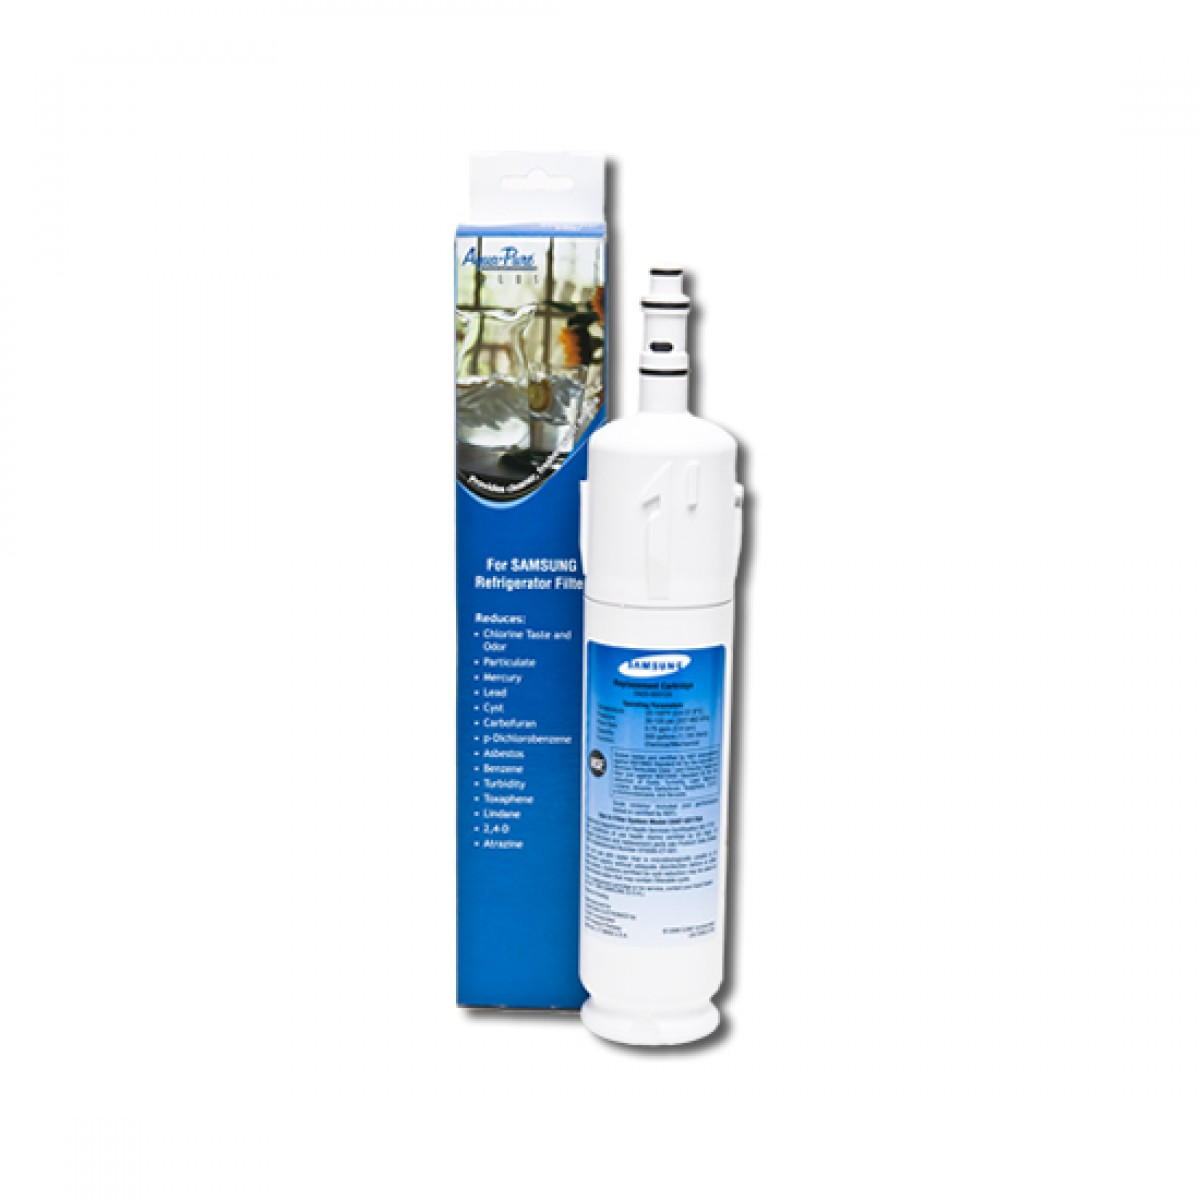 samsung fridge water filter. Samsung DA29-00012A Refrigerator Water Filter Fridge